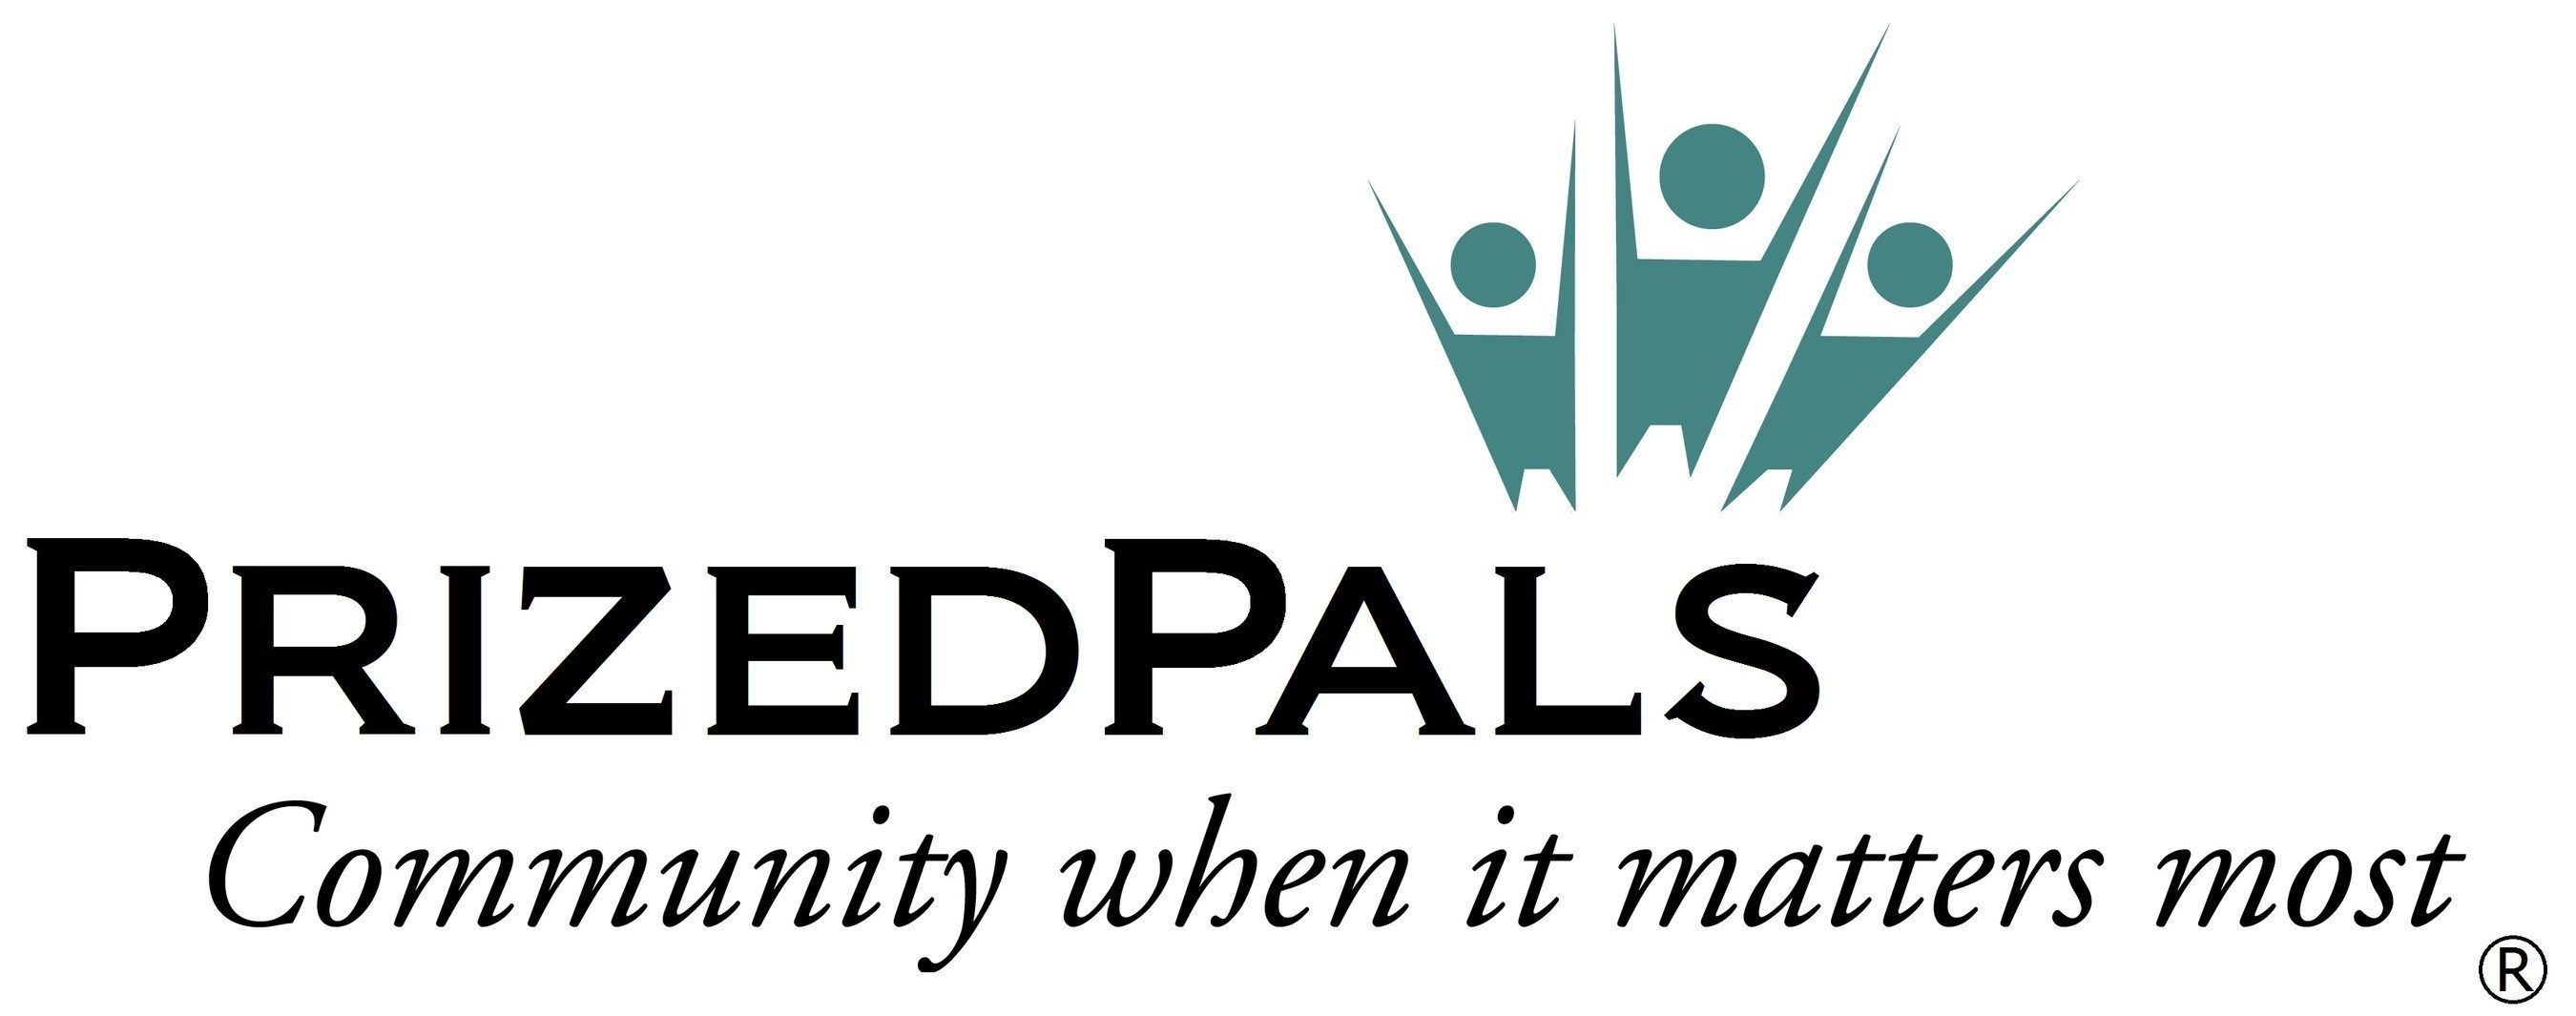 PrizedPals Leverages Empathy to Enhance How Pets Age, Heal